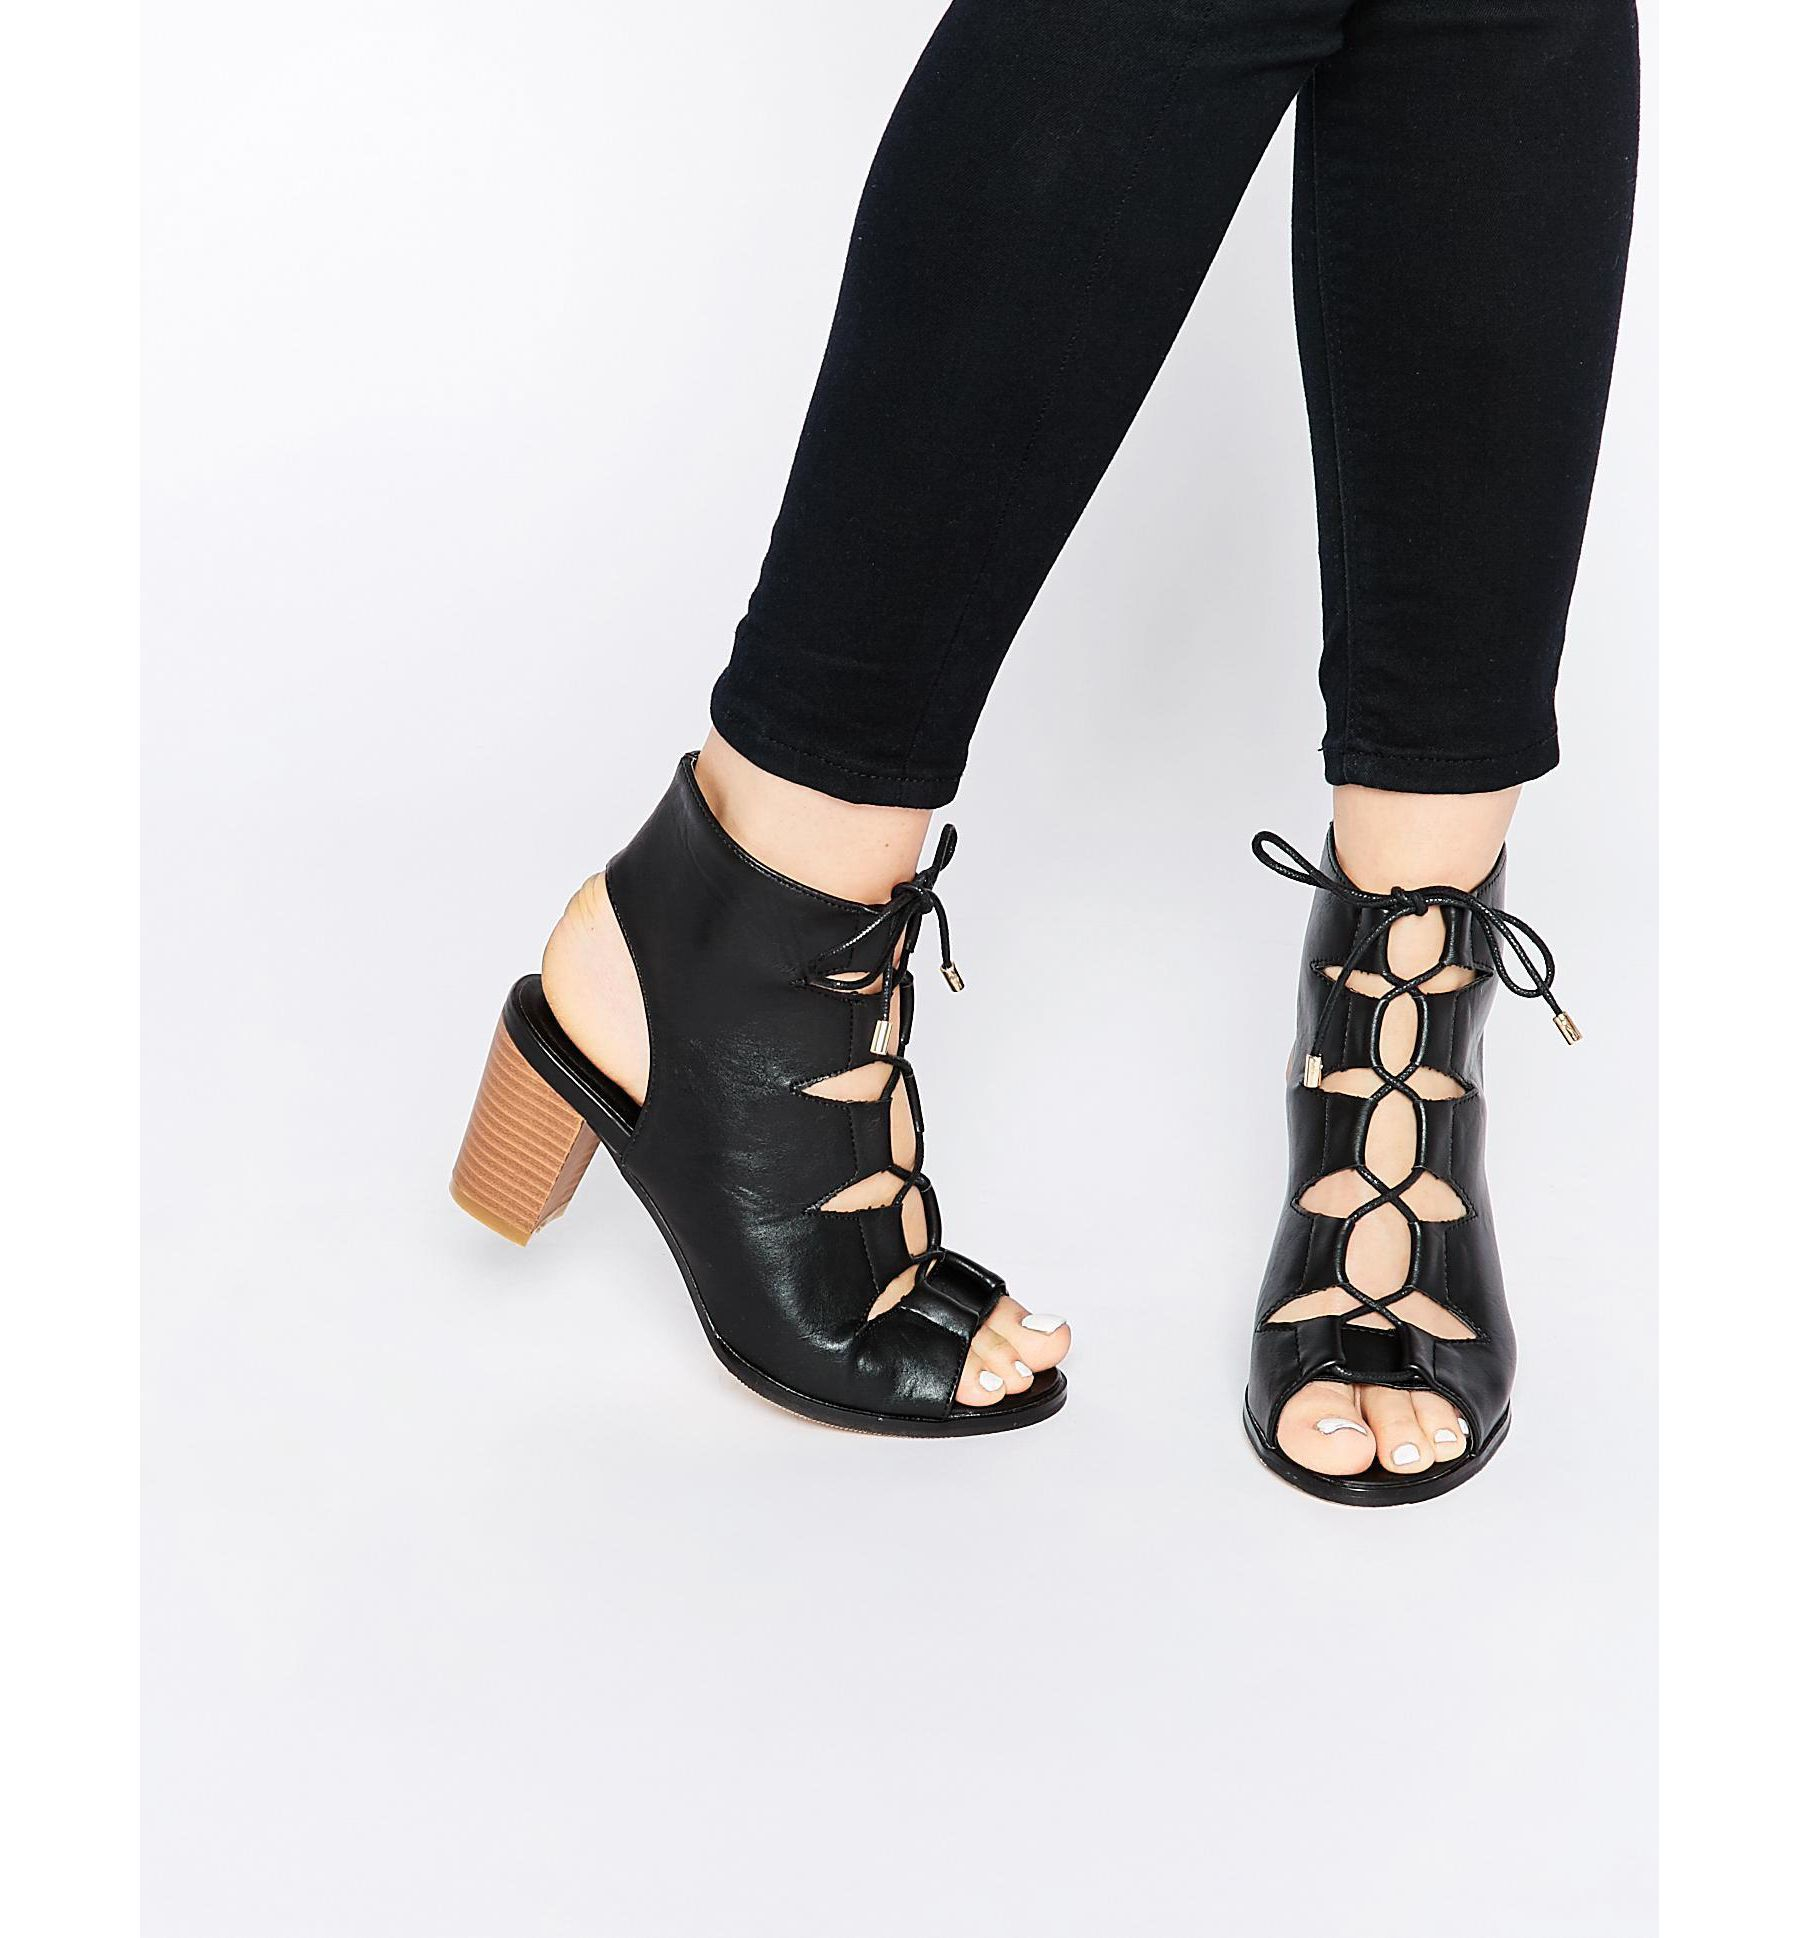 fe669ffff30e Lyst - Oasis Asis Lace Up Block Heeled Sandal in Black